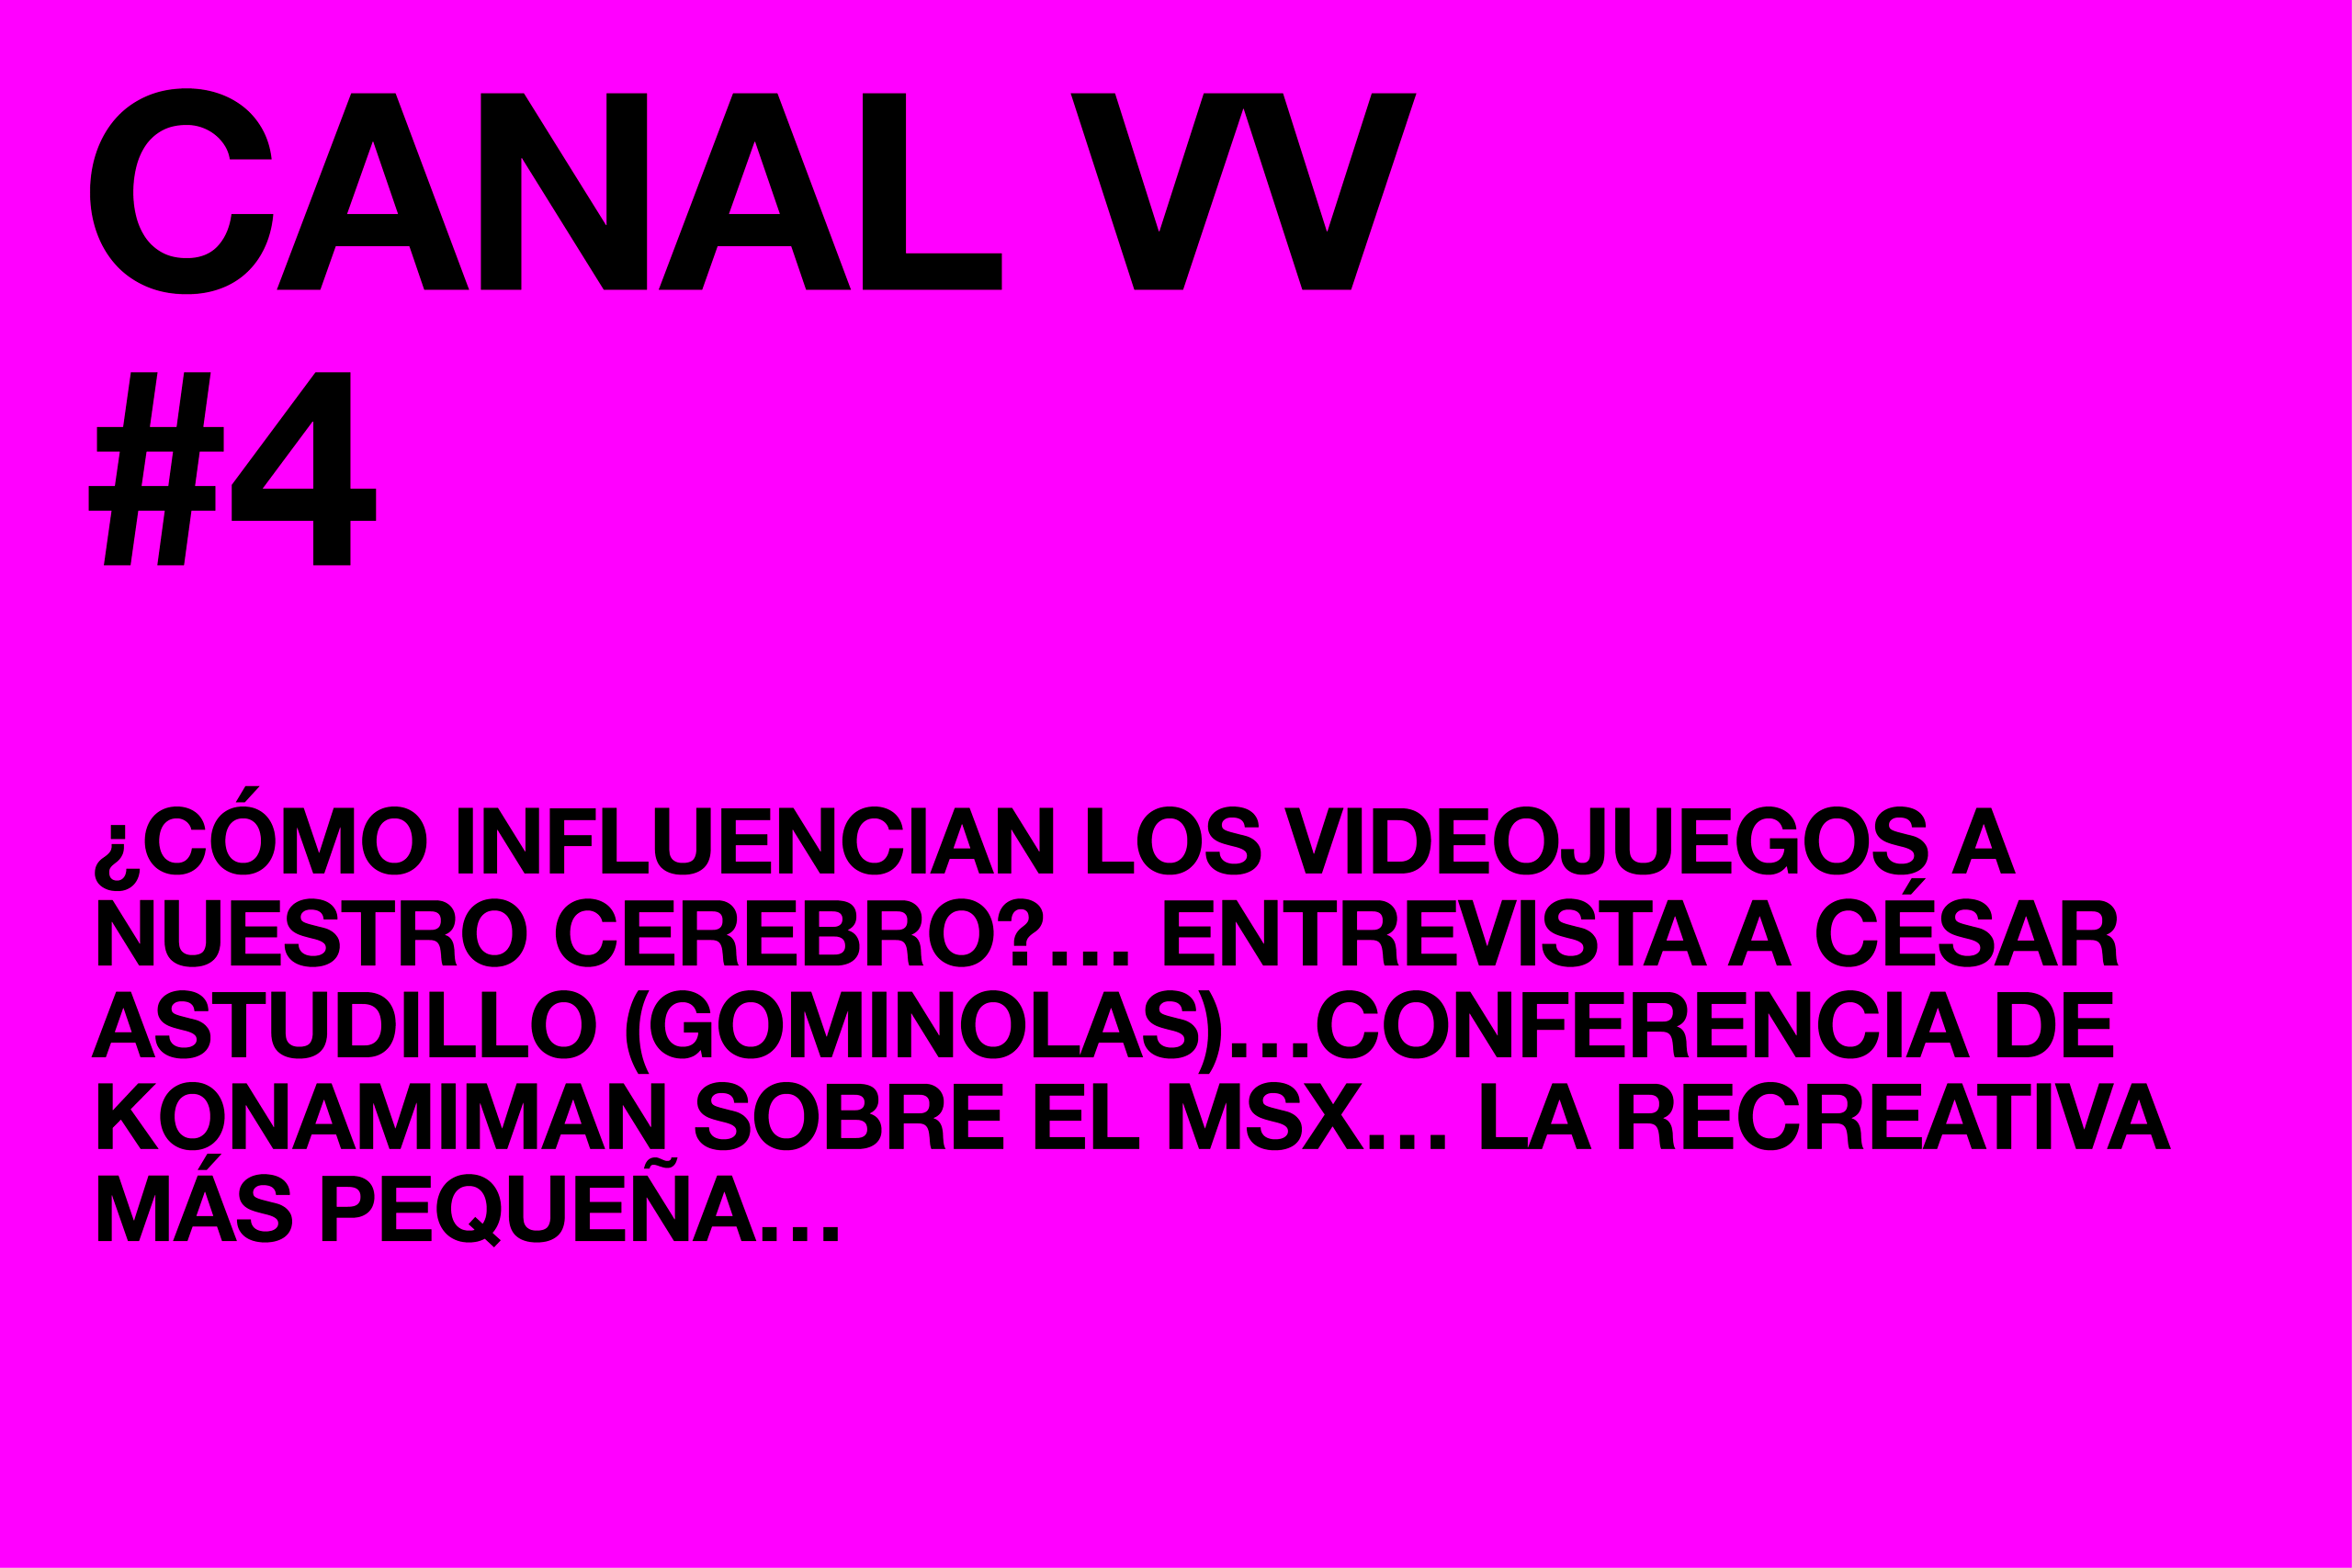 Canal VV